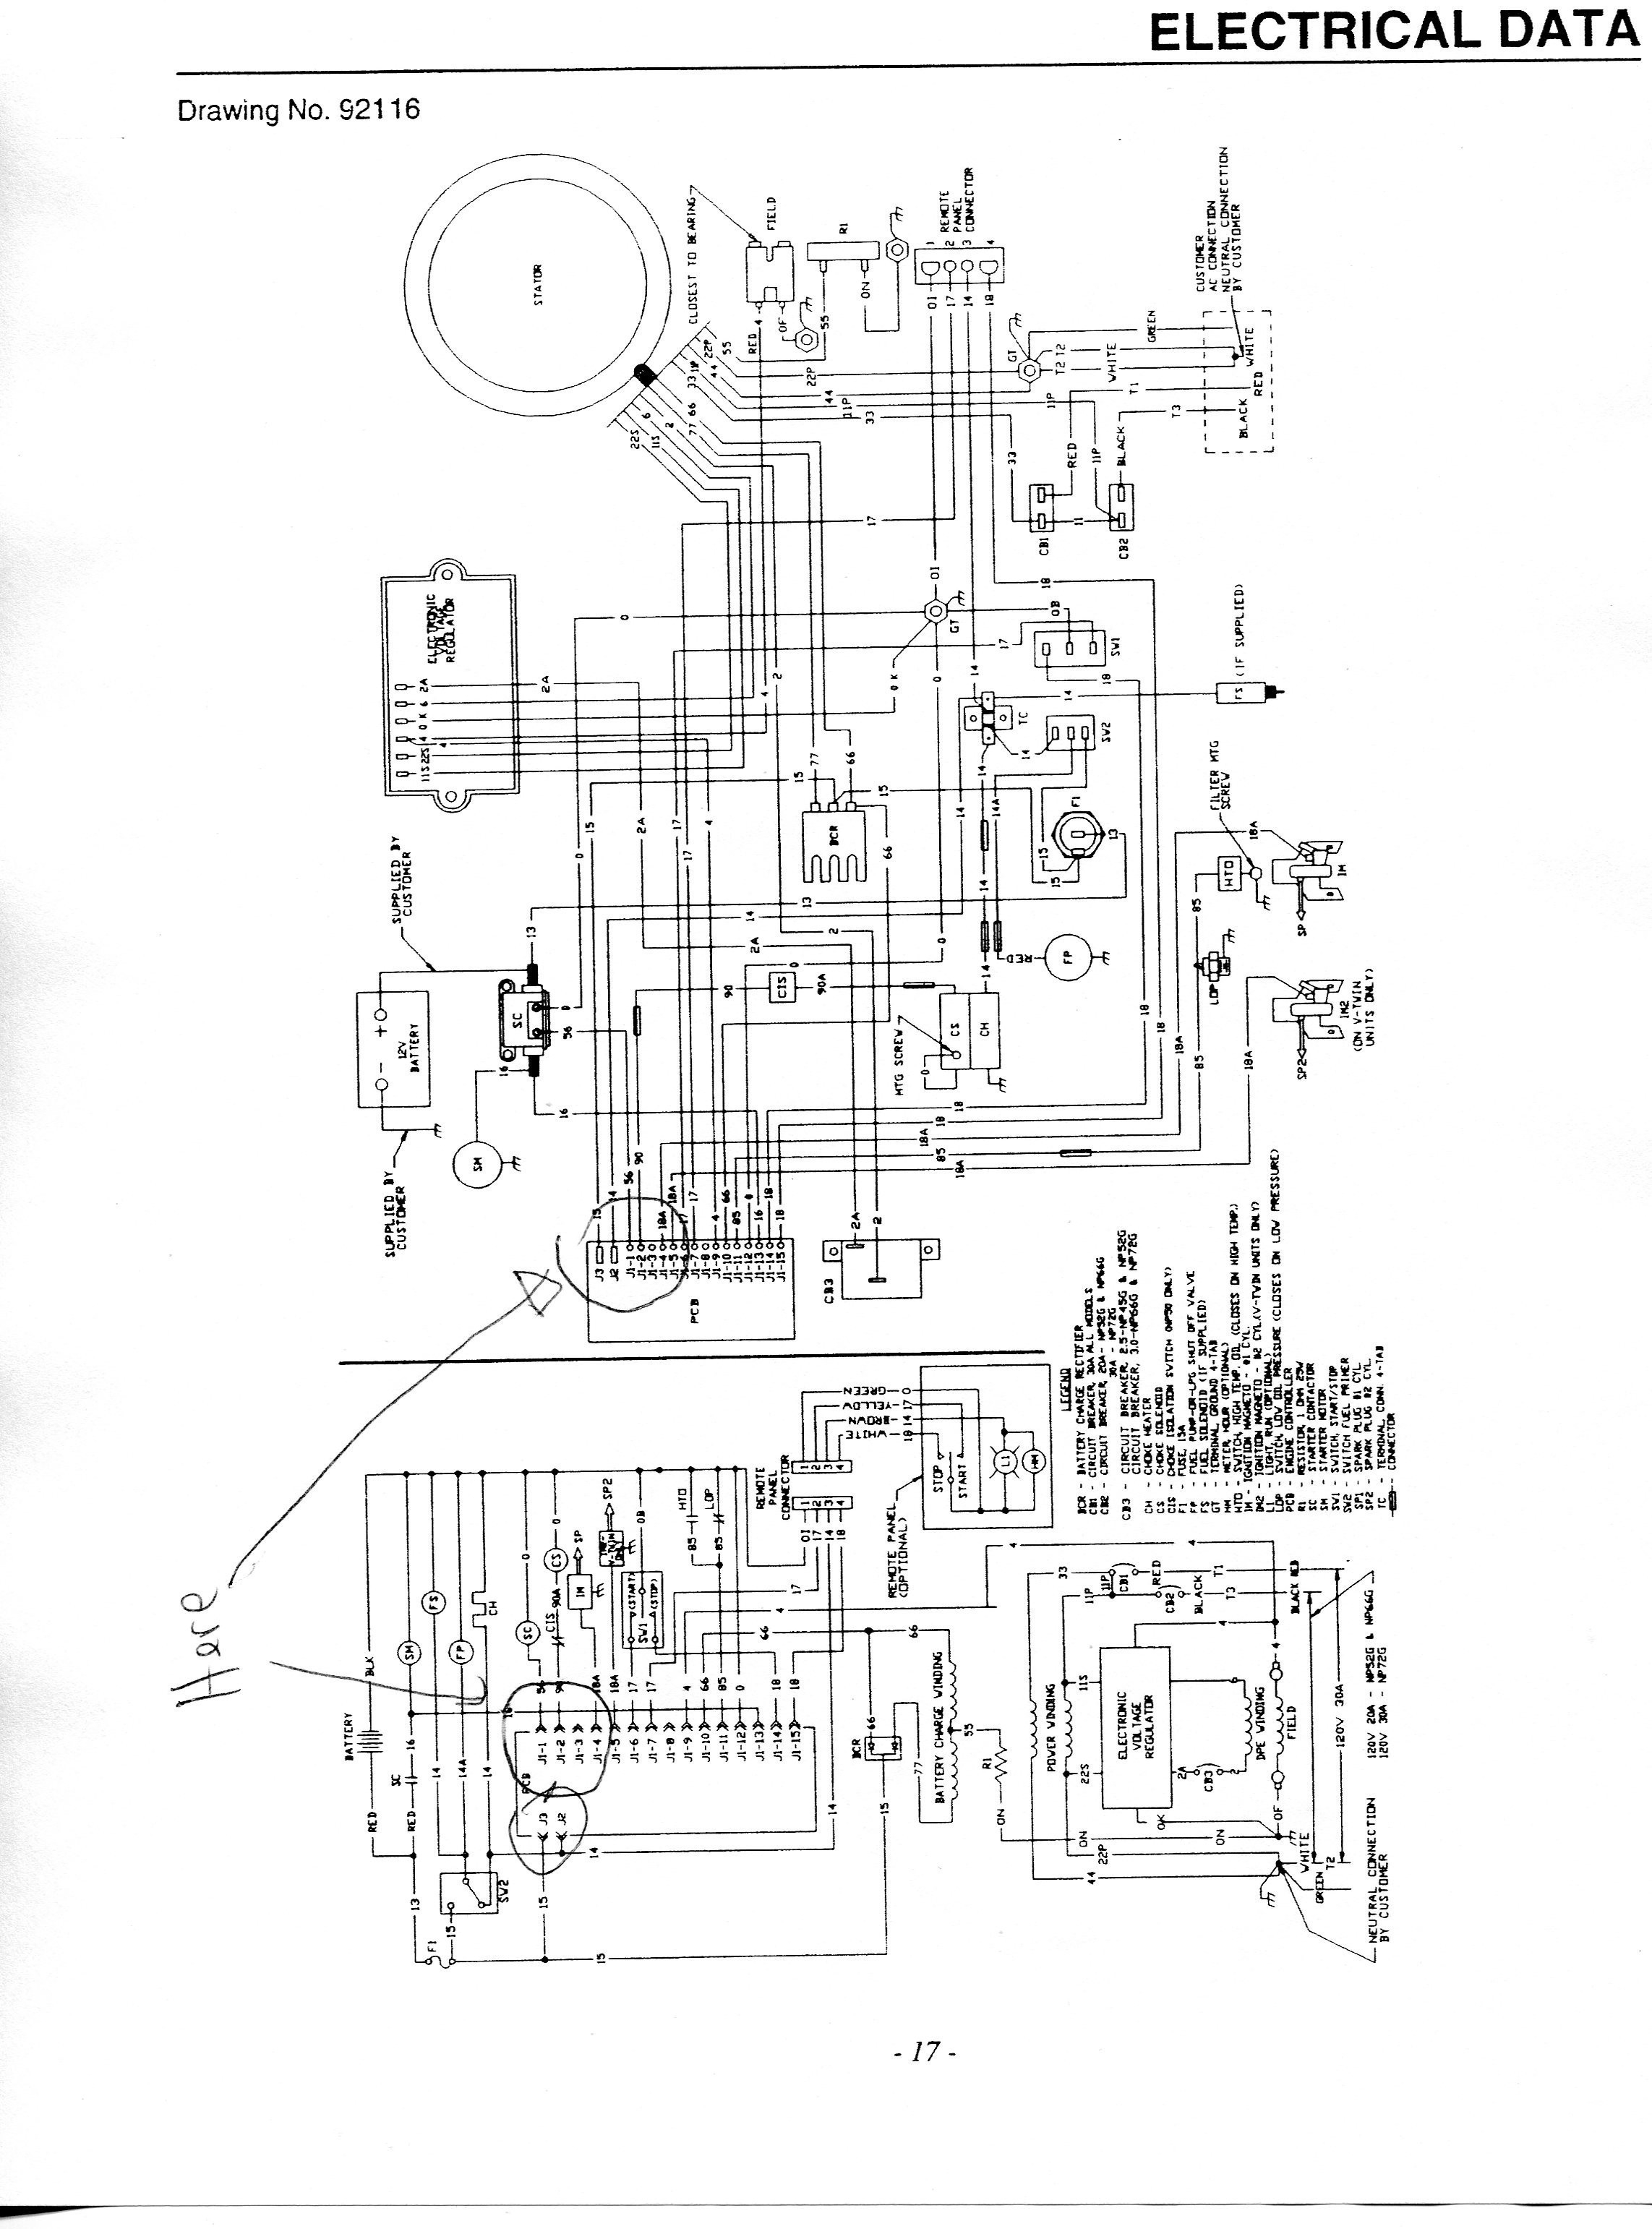 Ats Wiring Diagram For Standby Generator from wholefoodsonabudget.com